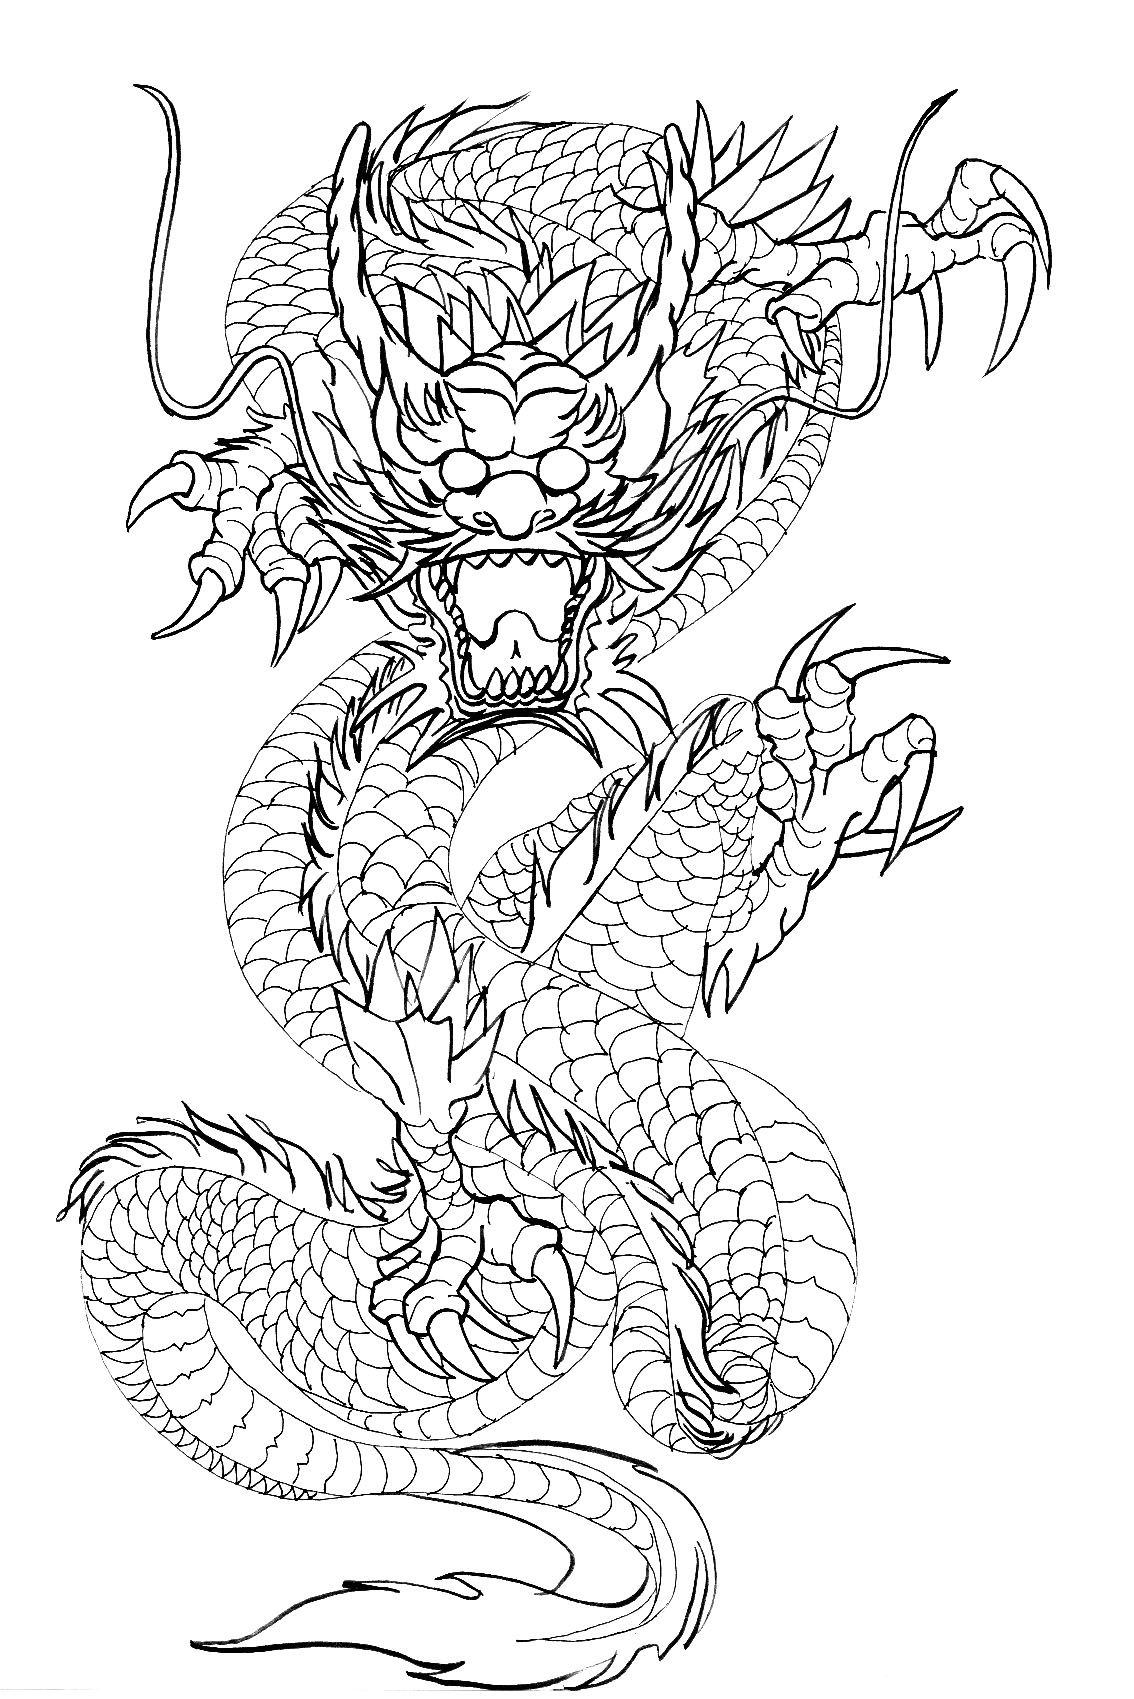 chinese dragon outline pin by southnblue on my art dragon illustration dragon outline dragon chinese